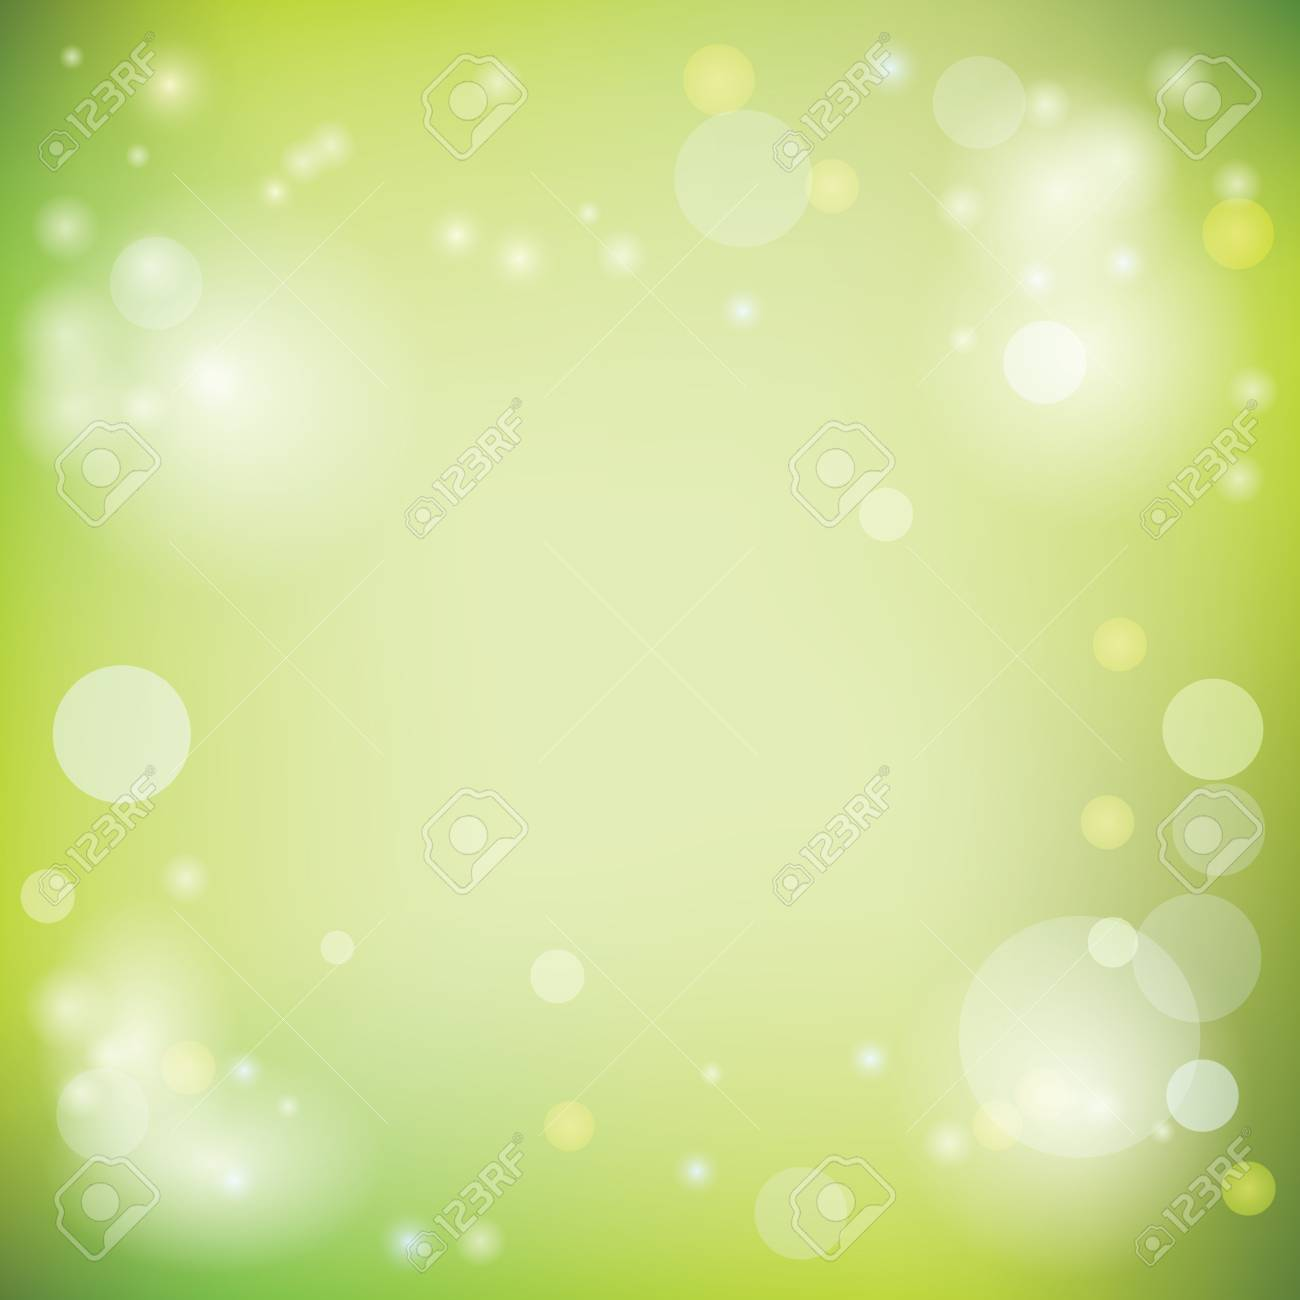 Light Green Vector Background With Lights Royalty Free Cliparts